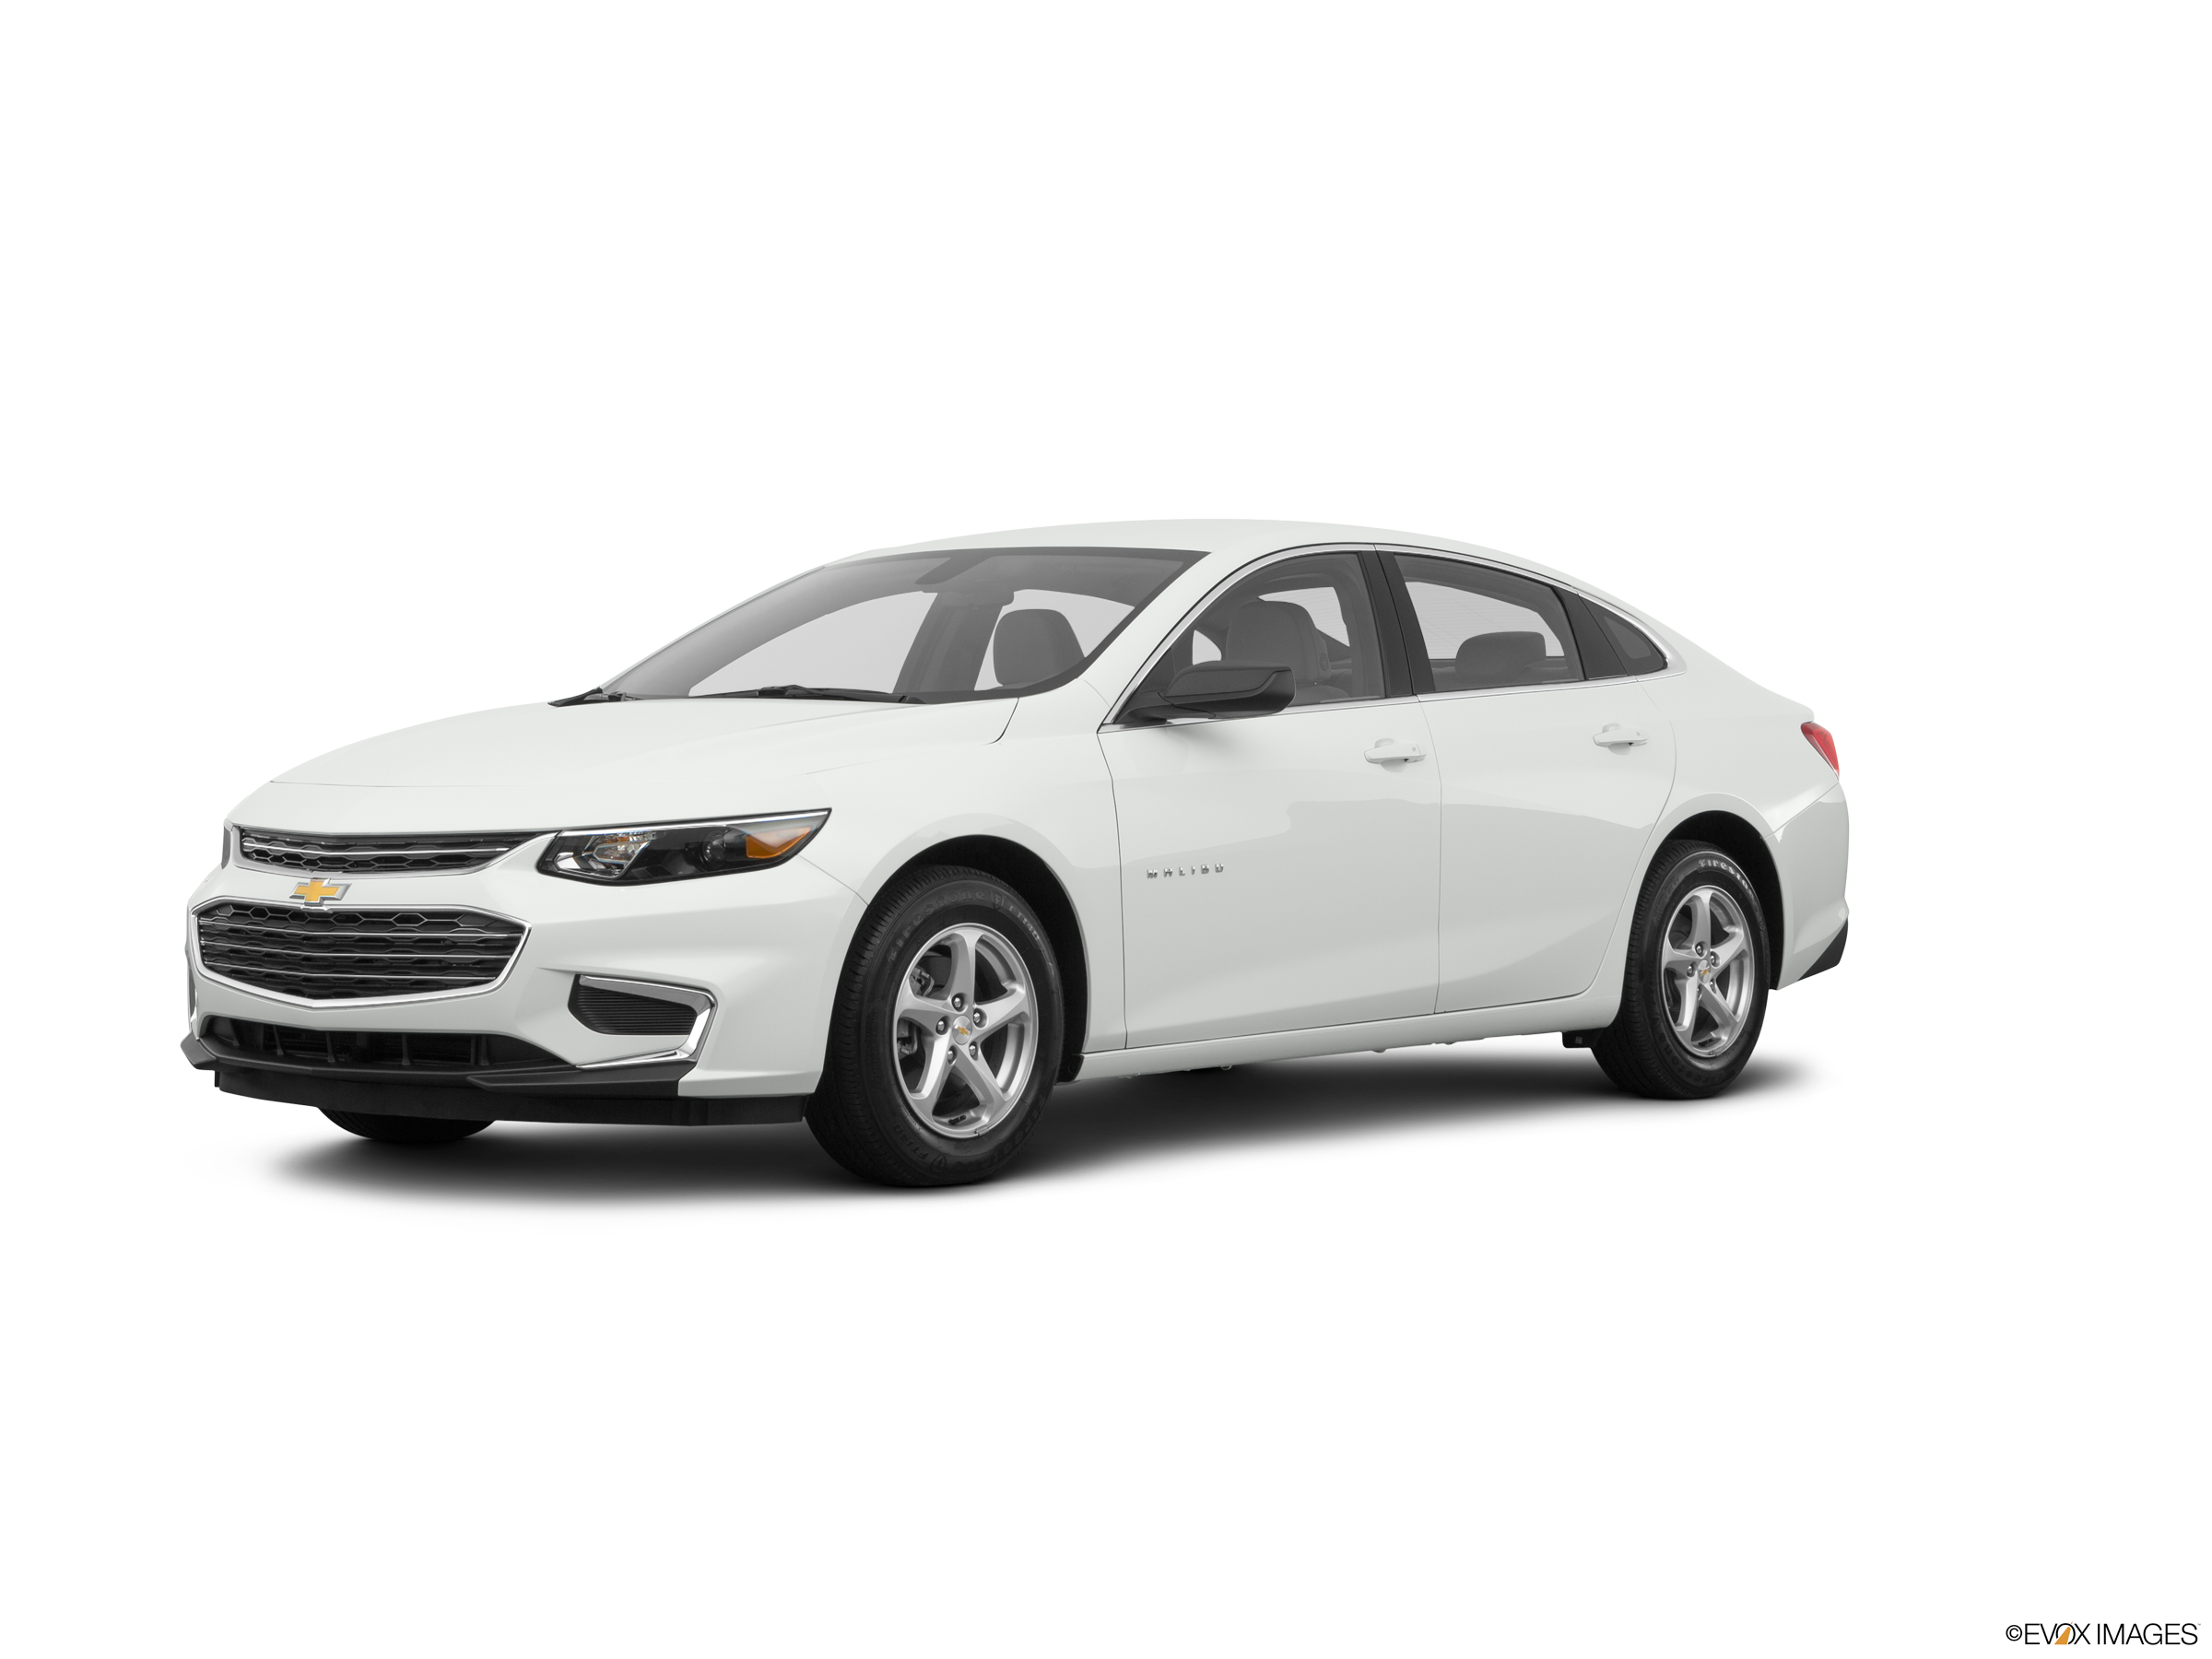 2017 Chevrolet Malibu Values Cars For Sale Kelley Blue Book